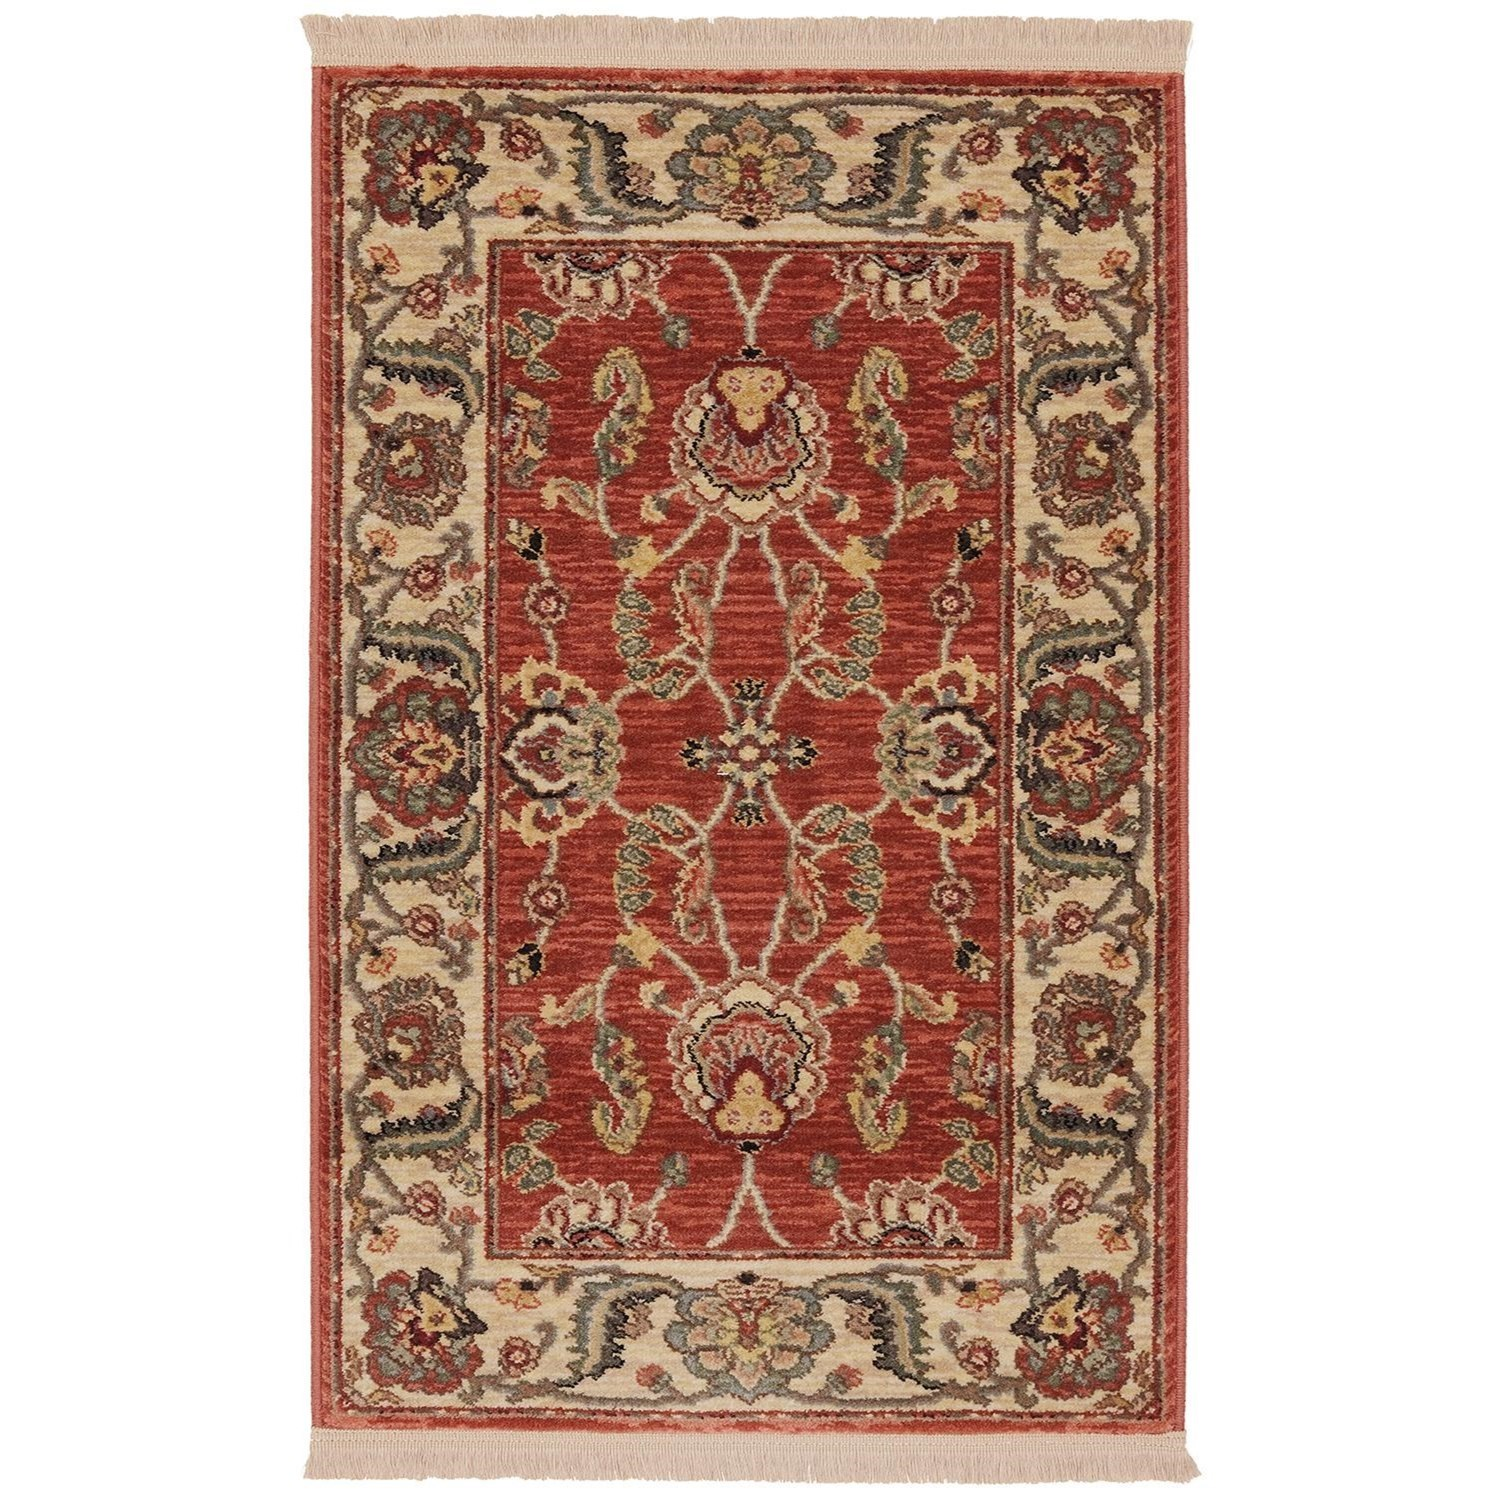 Karastan Rugs Ashara 4'3x6' Agra Red Rug - Item Number: 00549 15002 051072